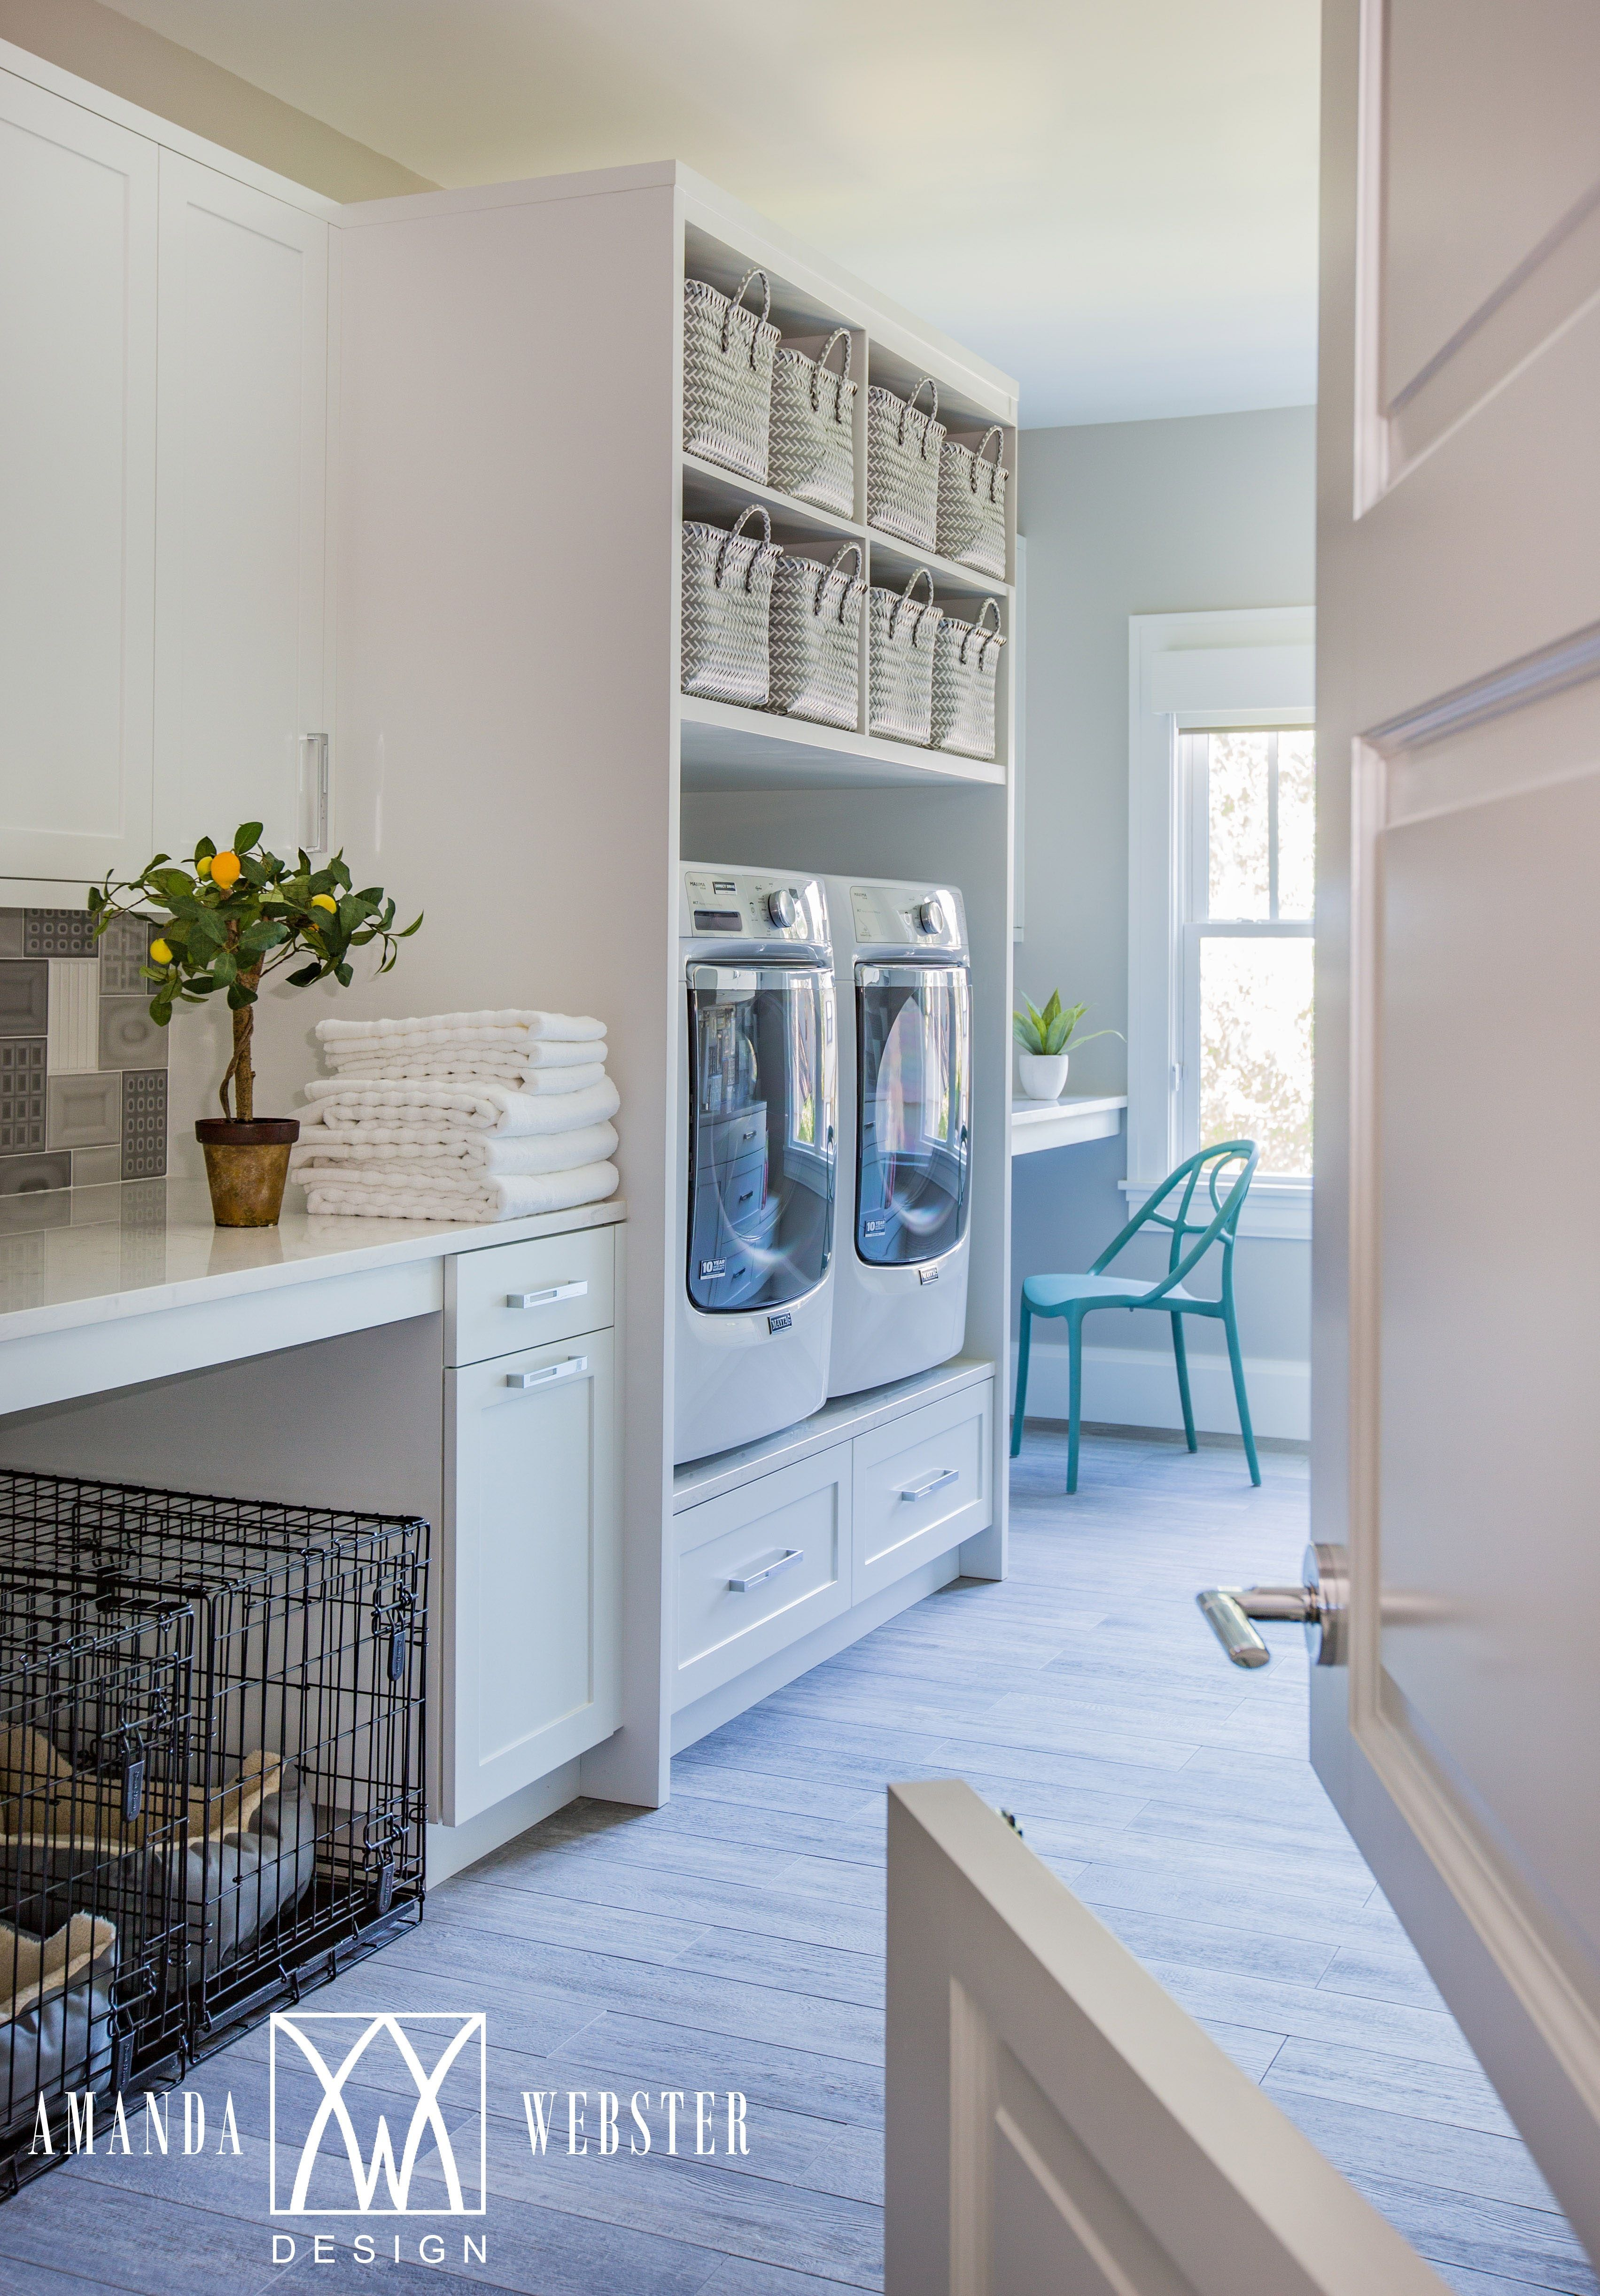 10x10 Laundry Room Layout: Grandkid Getaway Laundry & Pet Room By Amanda Webster